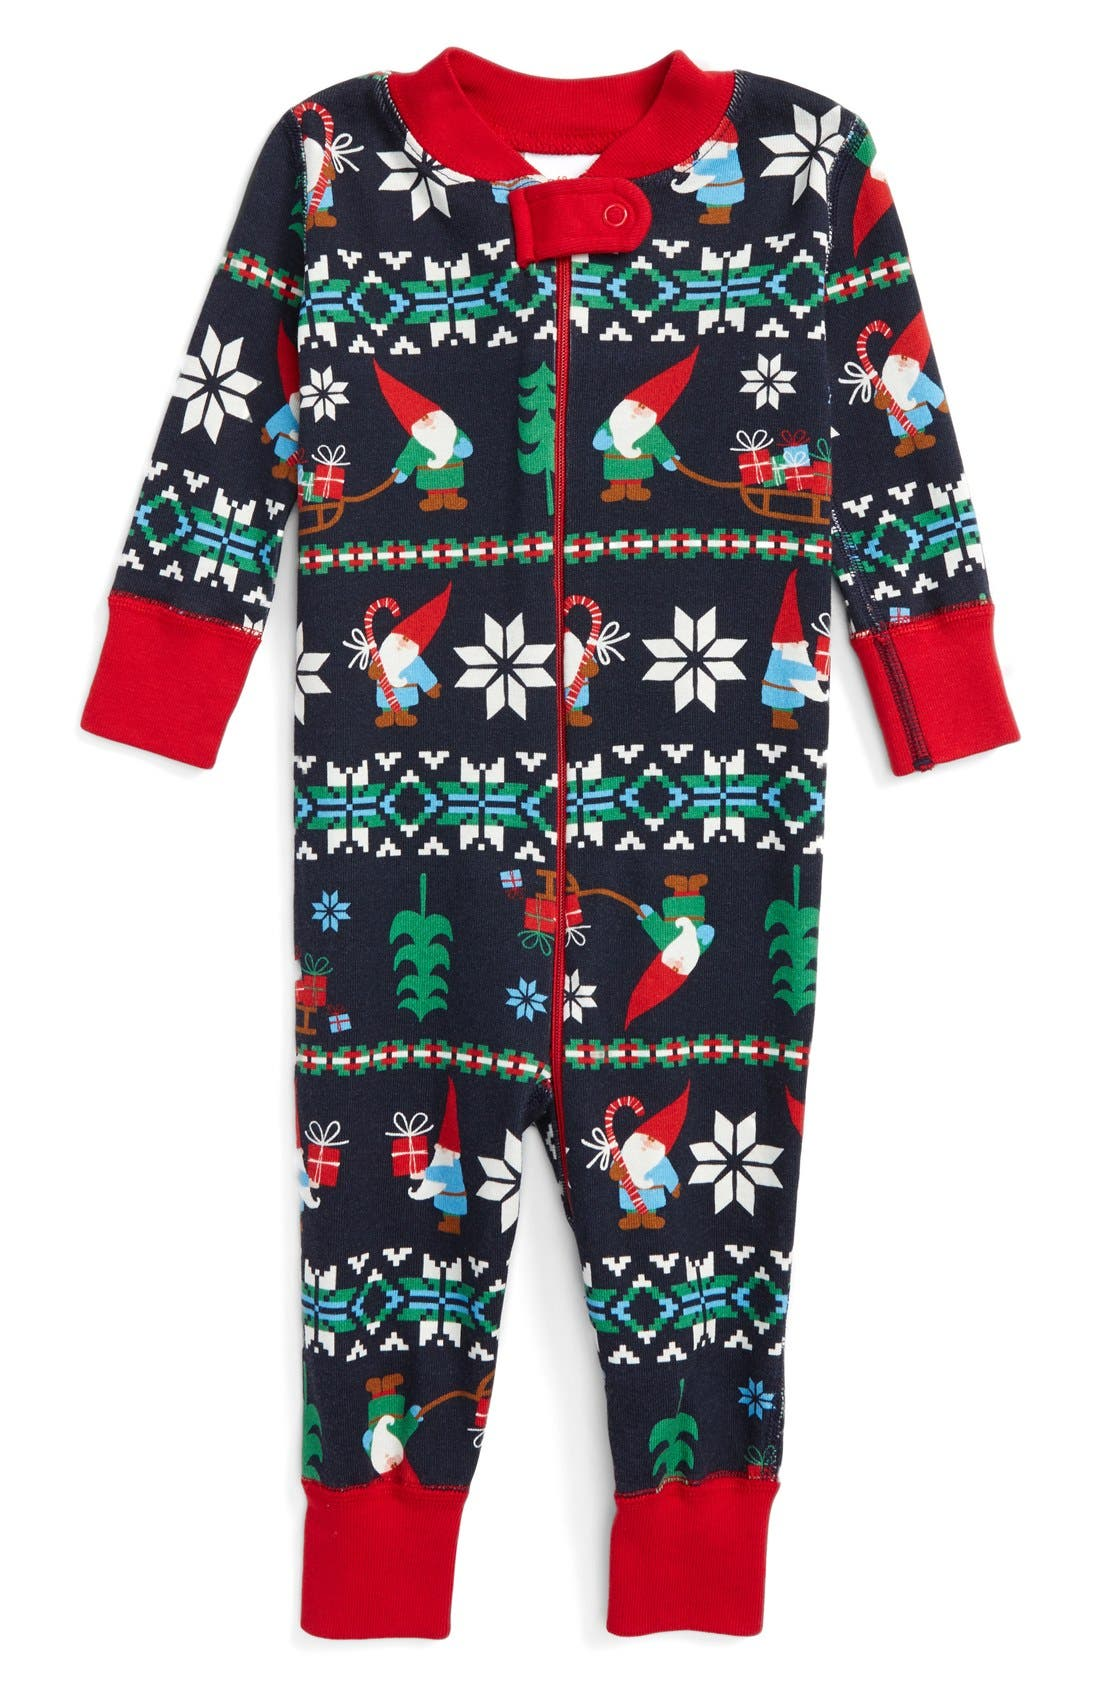 Hanna Andersson Gnome Fair Isle Organic Cotton Fitted One-Piece ...